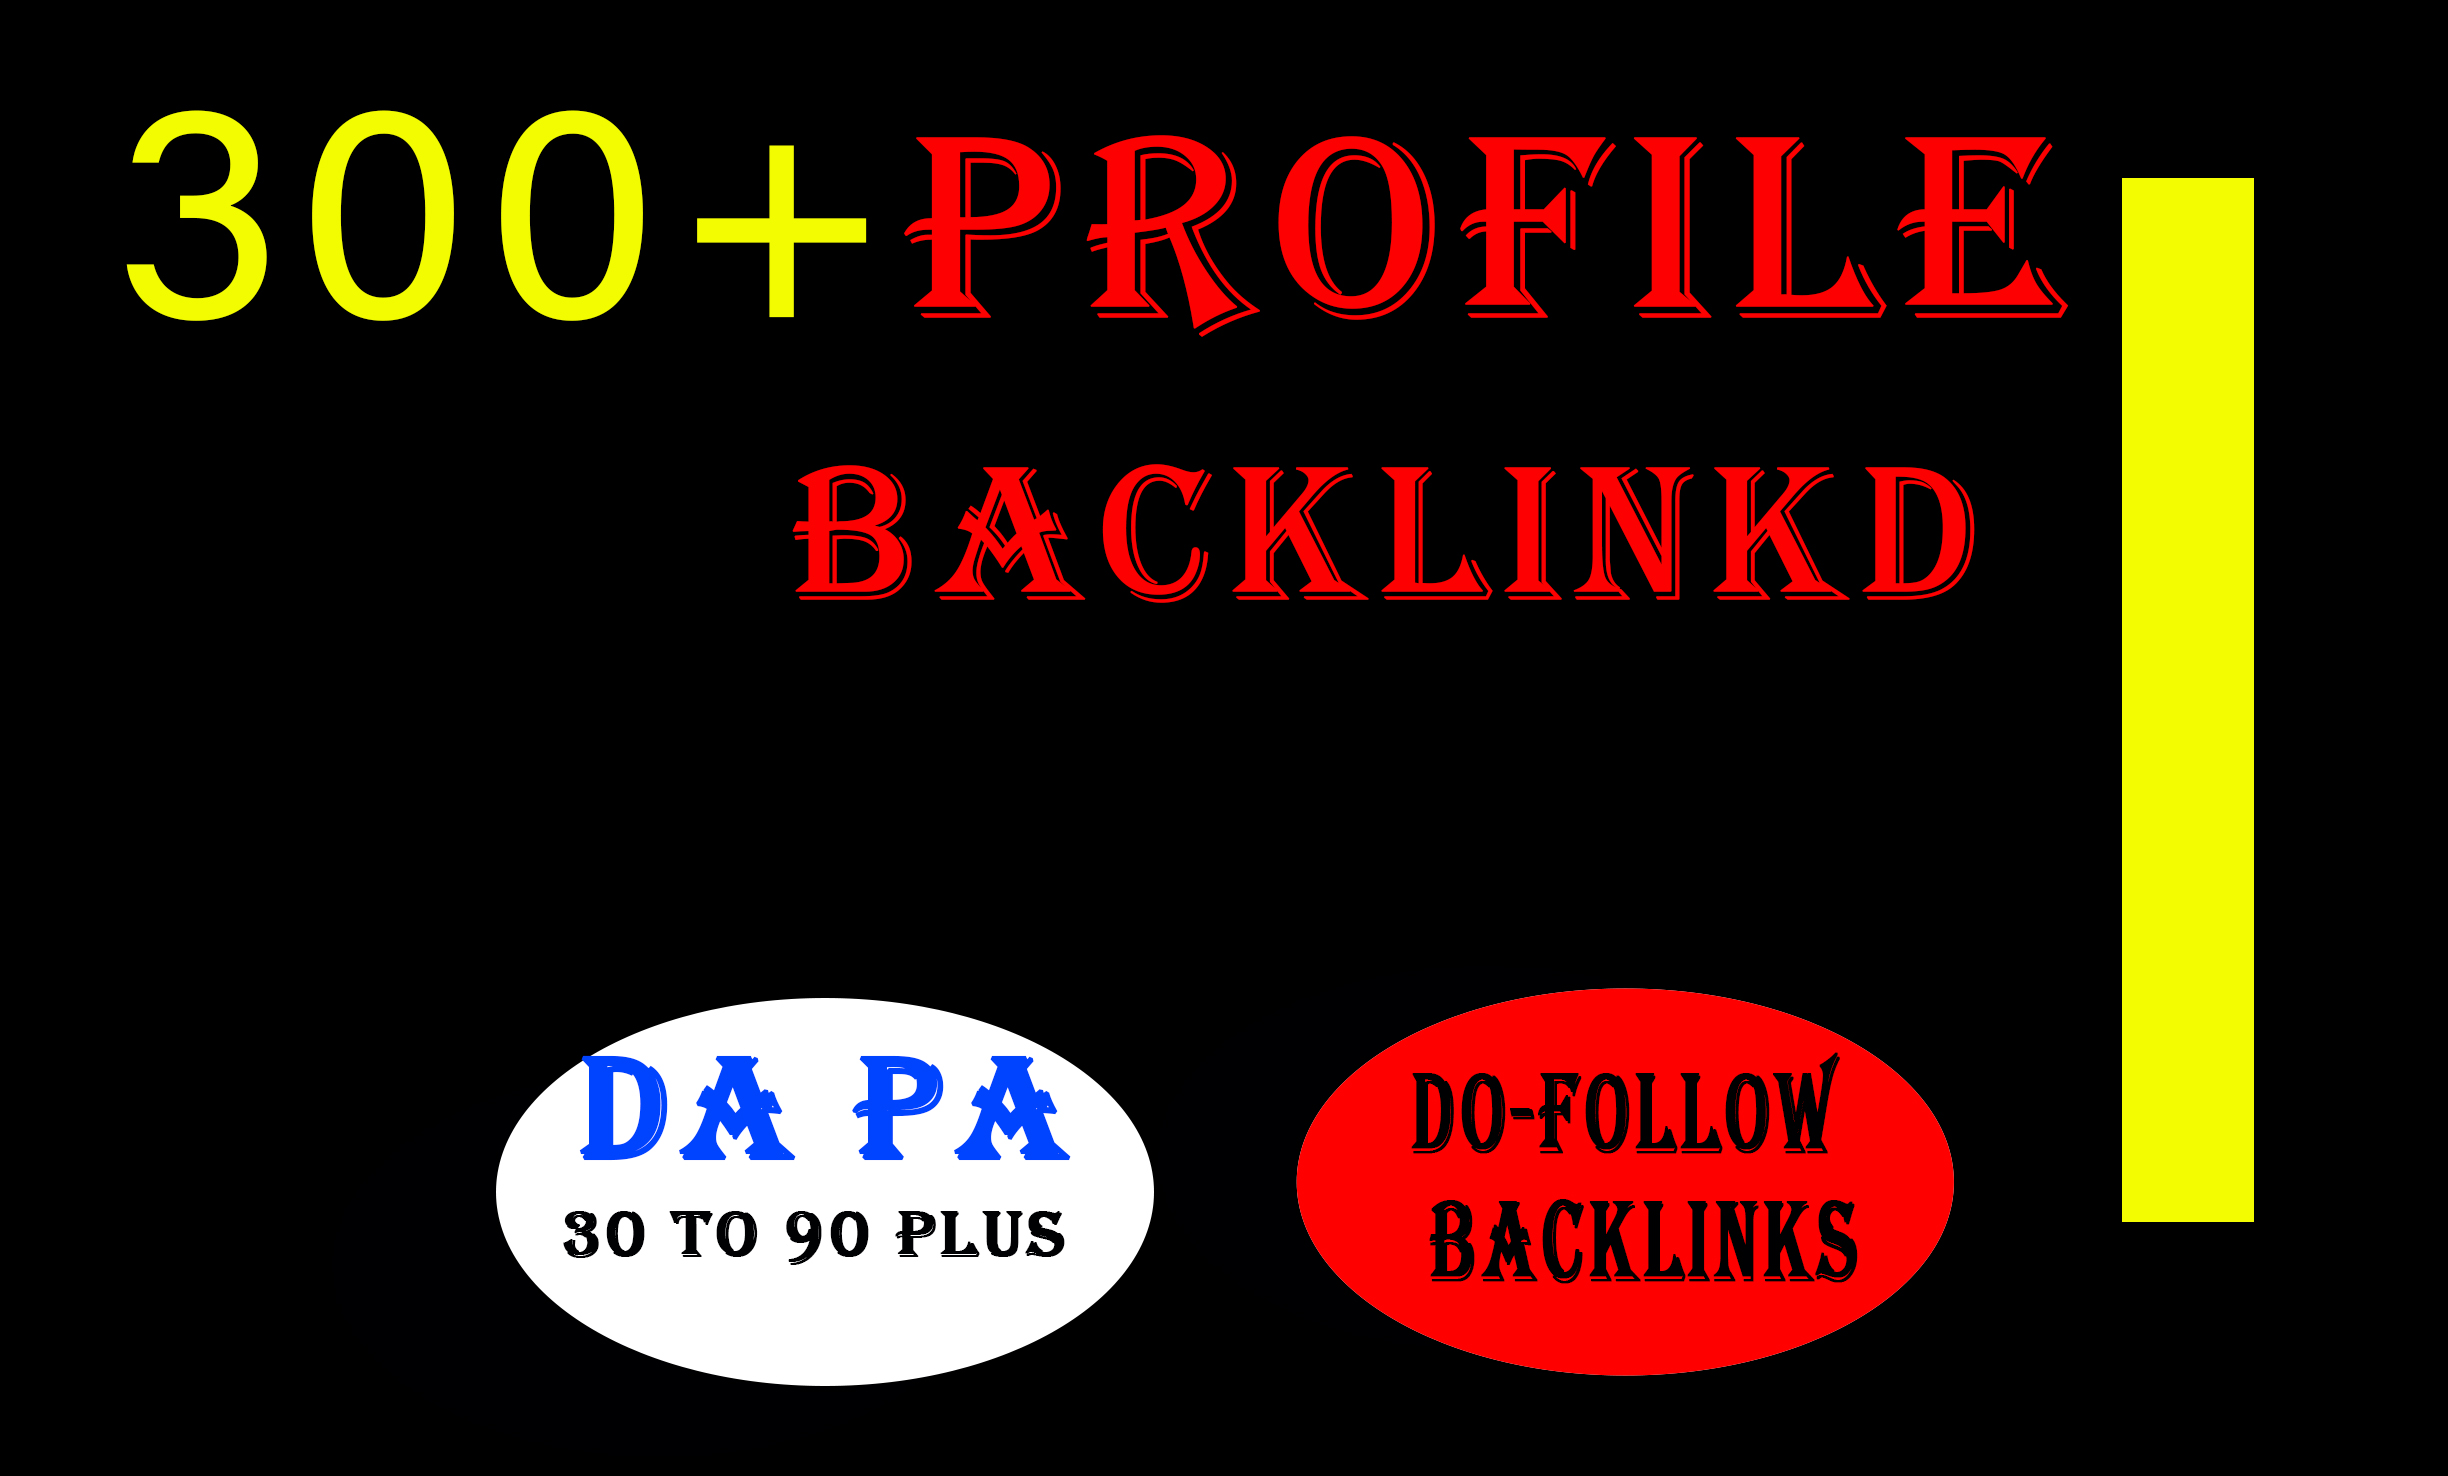 I will make manual profile backlinks on high authority websites